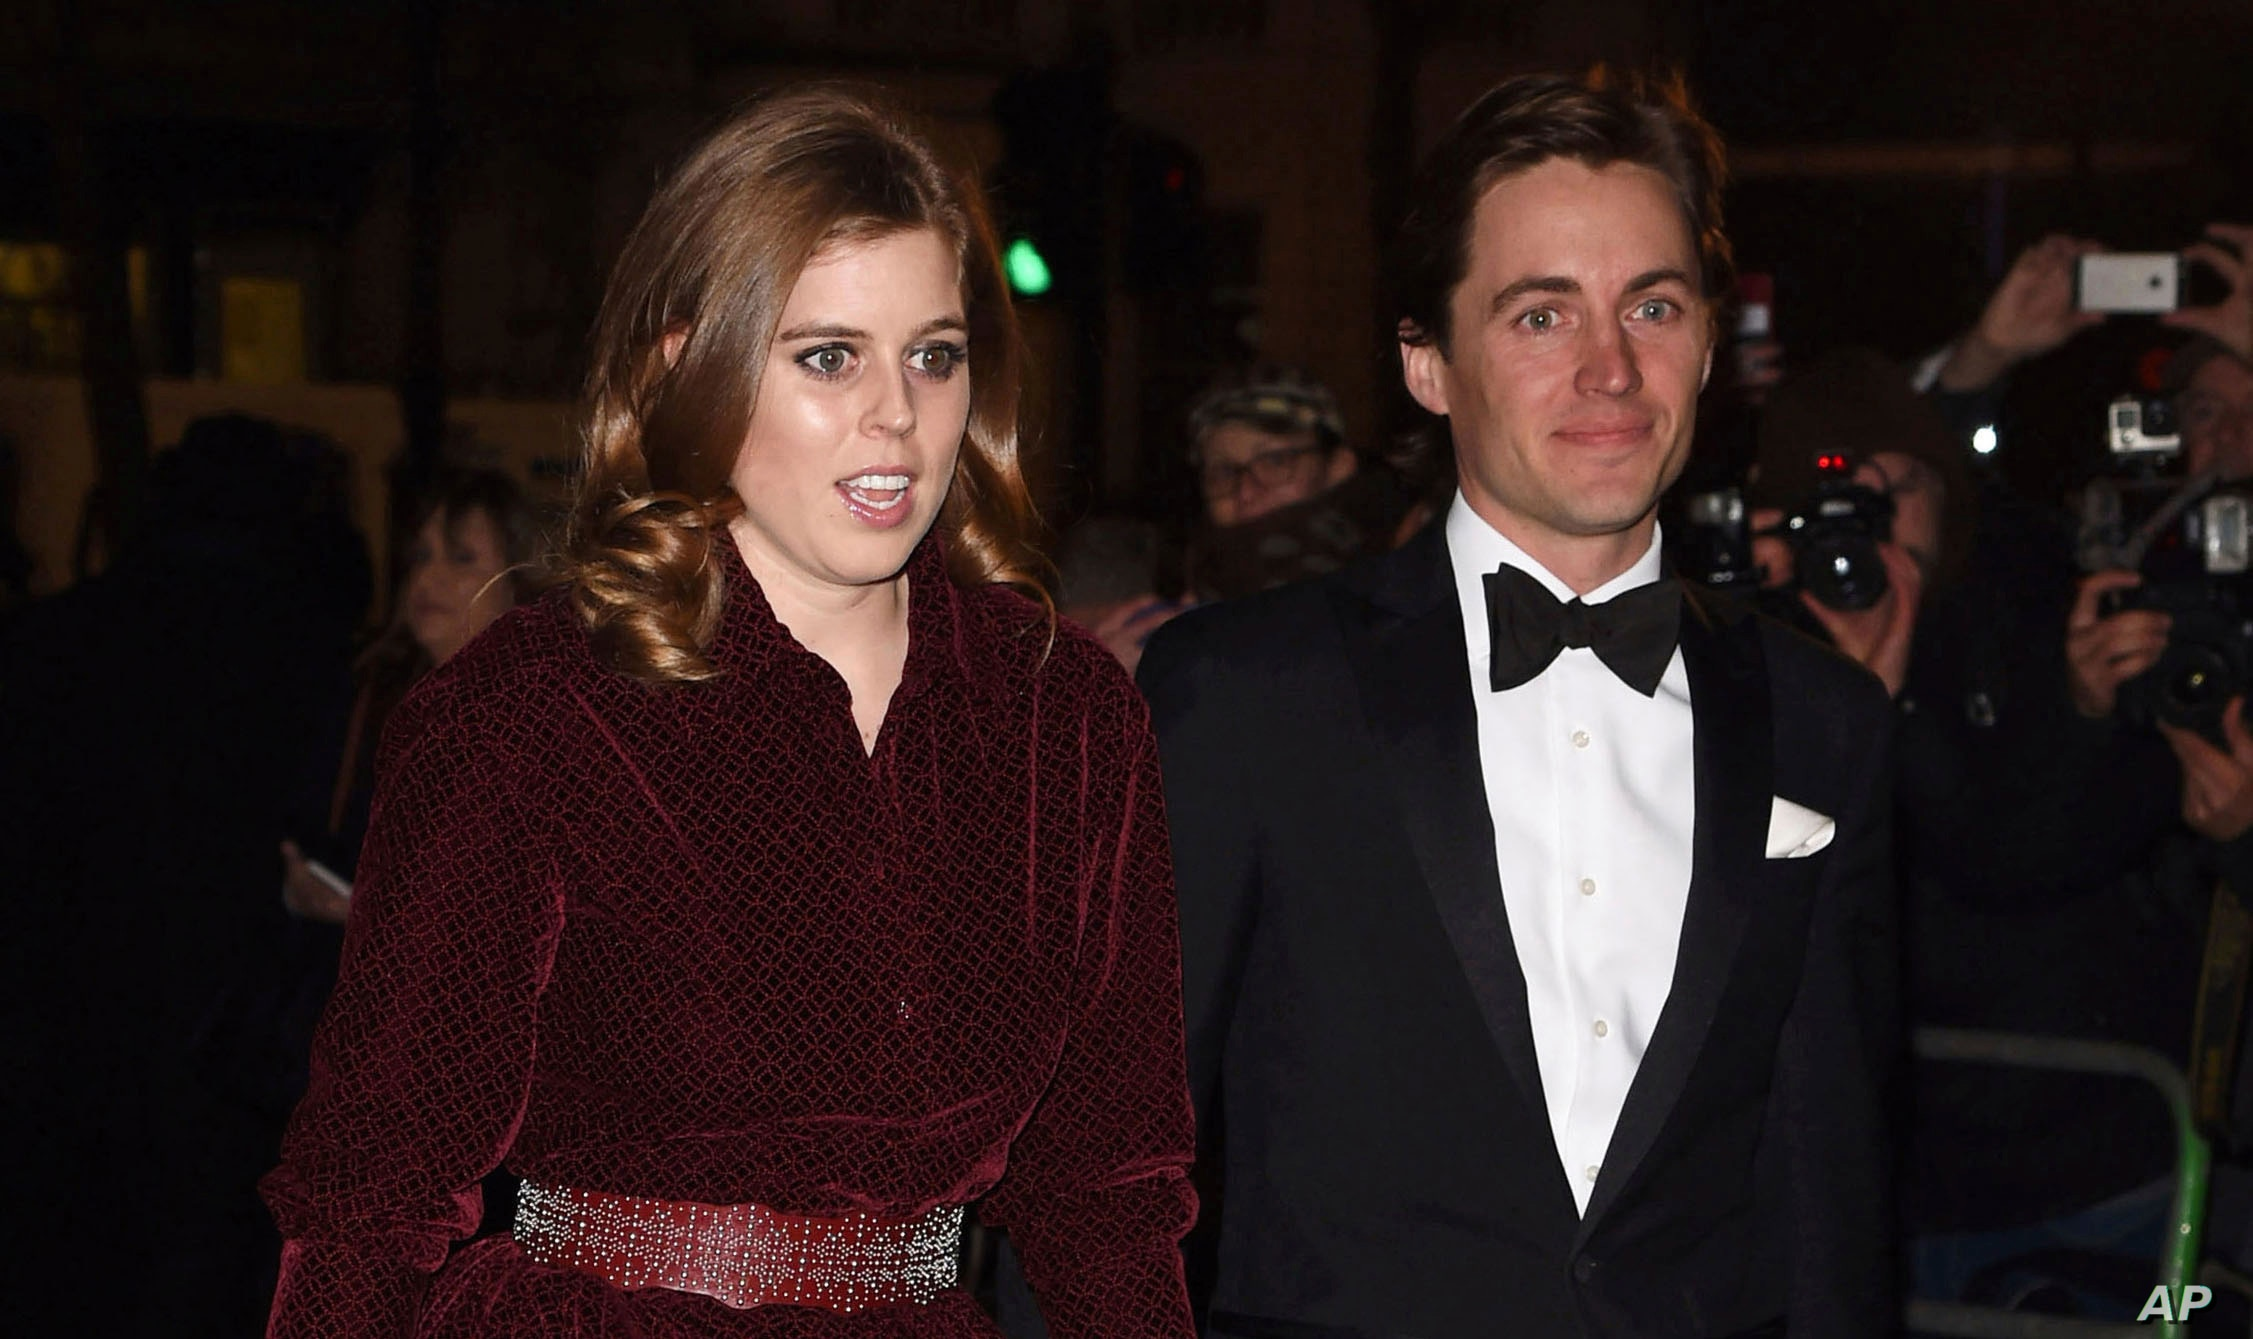 Princess Beatrice Marries In Private Ceremony At Windsor Voice